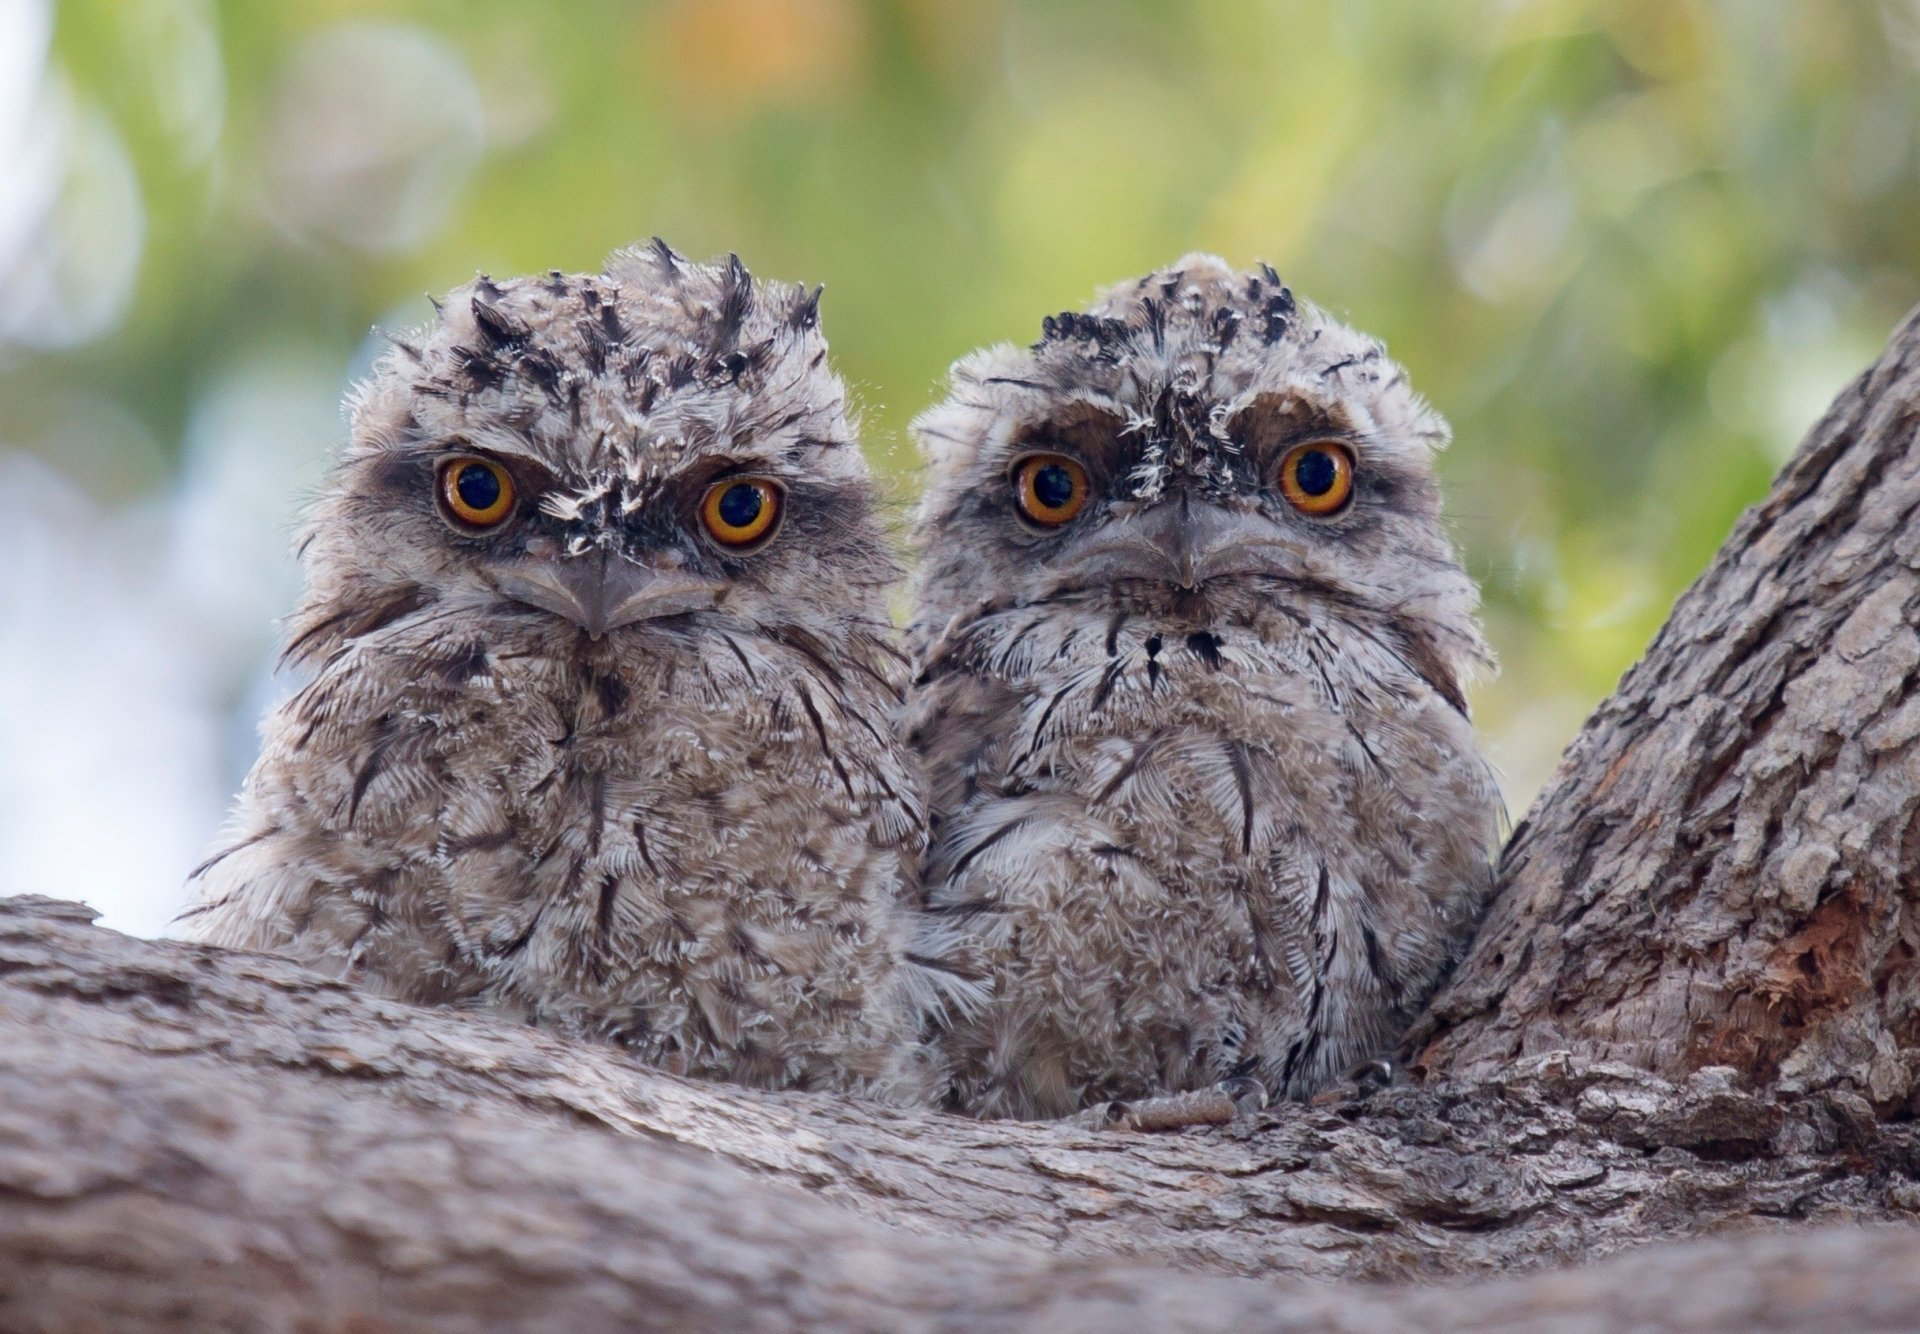 Cute Wallpapers For Facebook Profile Photo Two Owlets On A Tree Branch Hd Wallpaper Background